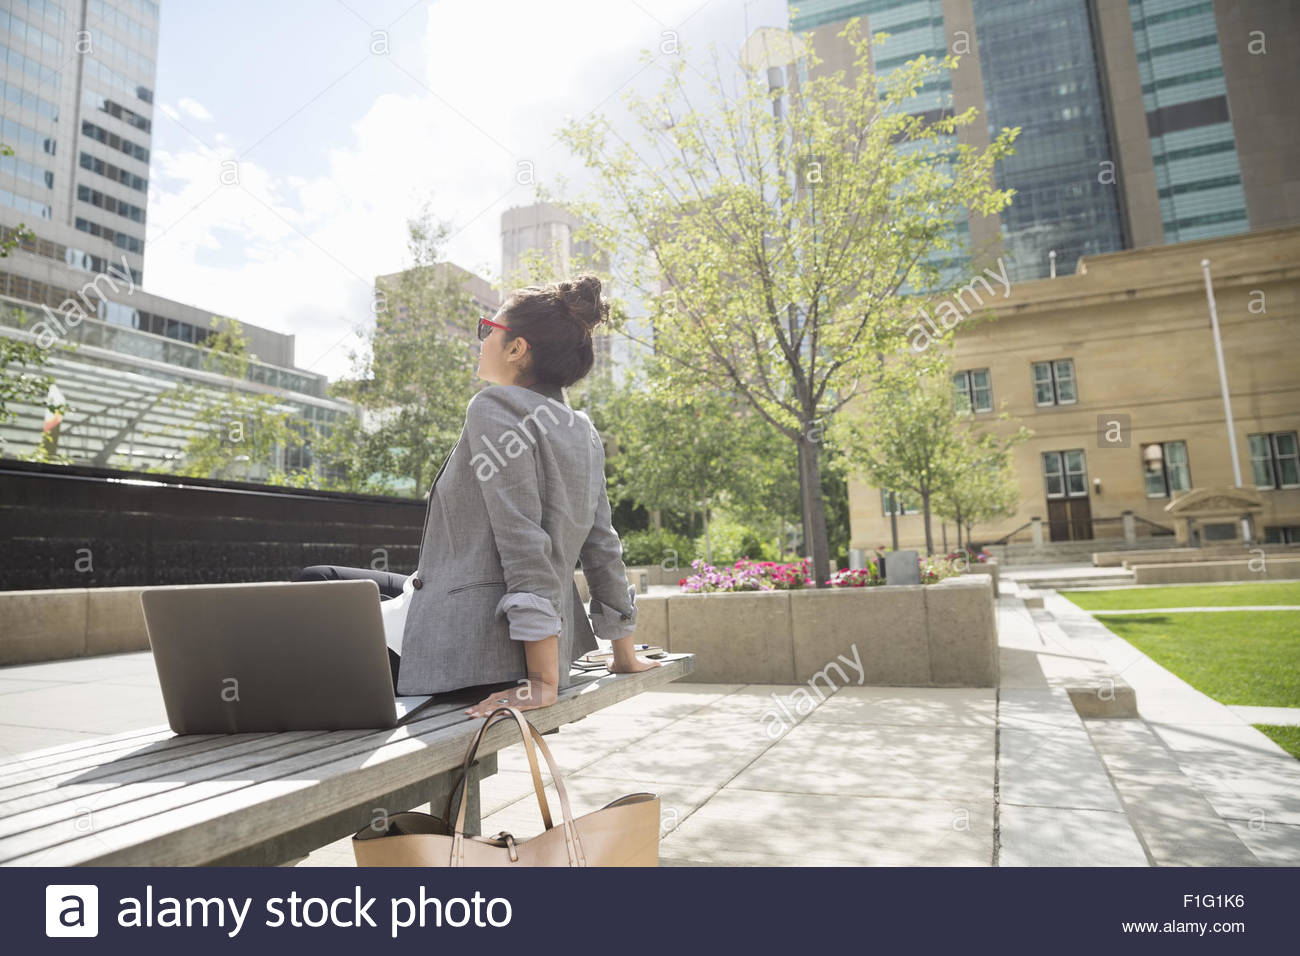 Businesswoman basking in sunshine in urban park - Stock Image